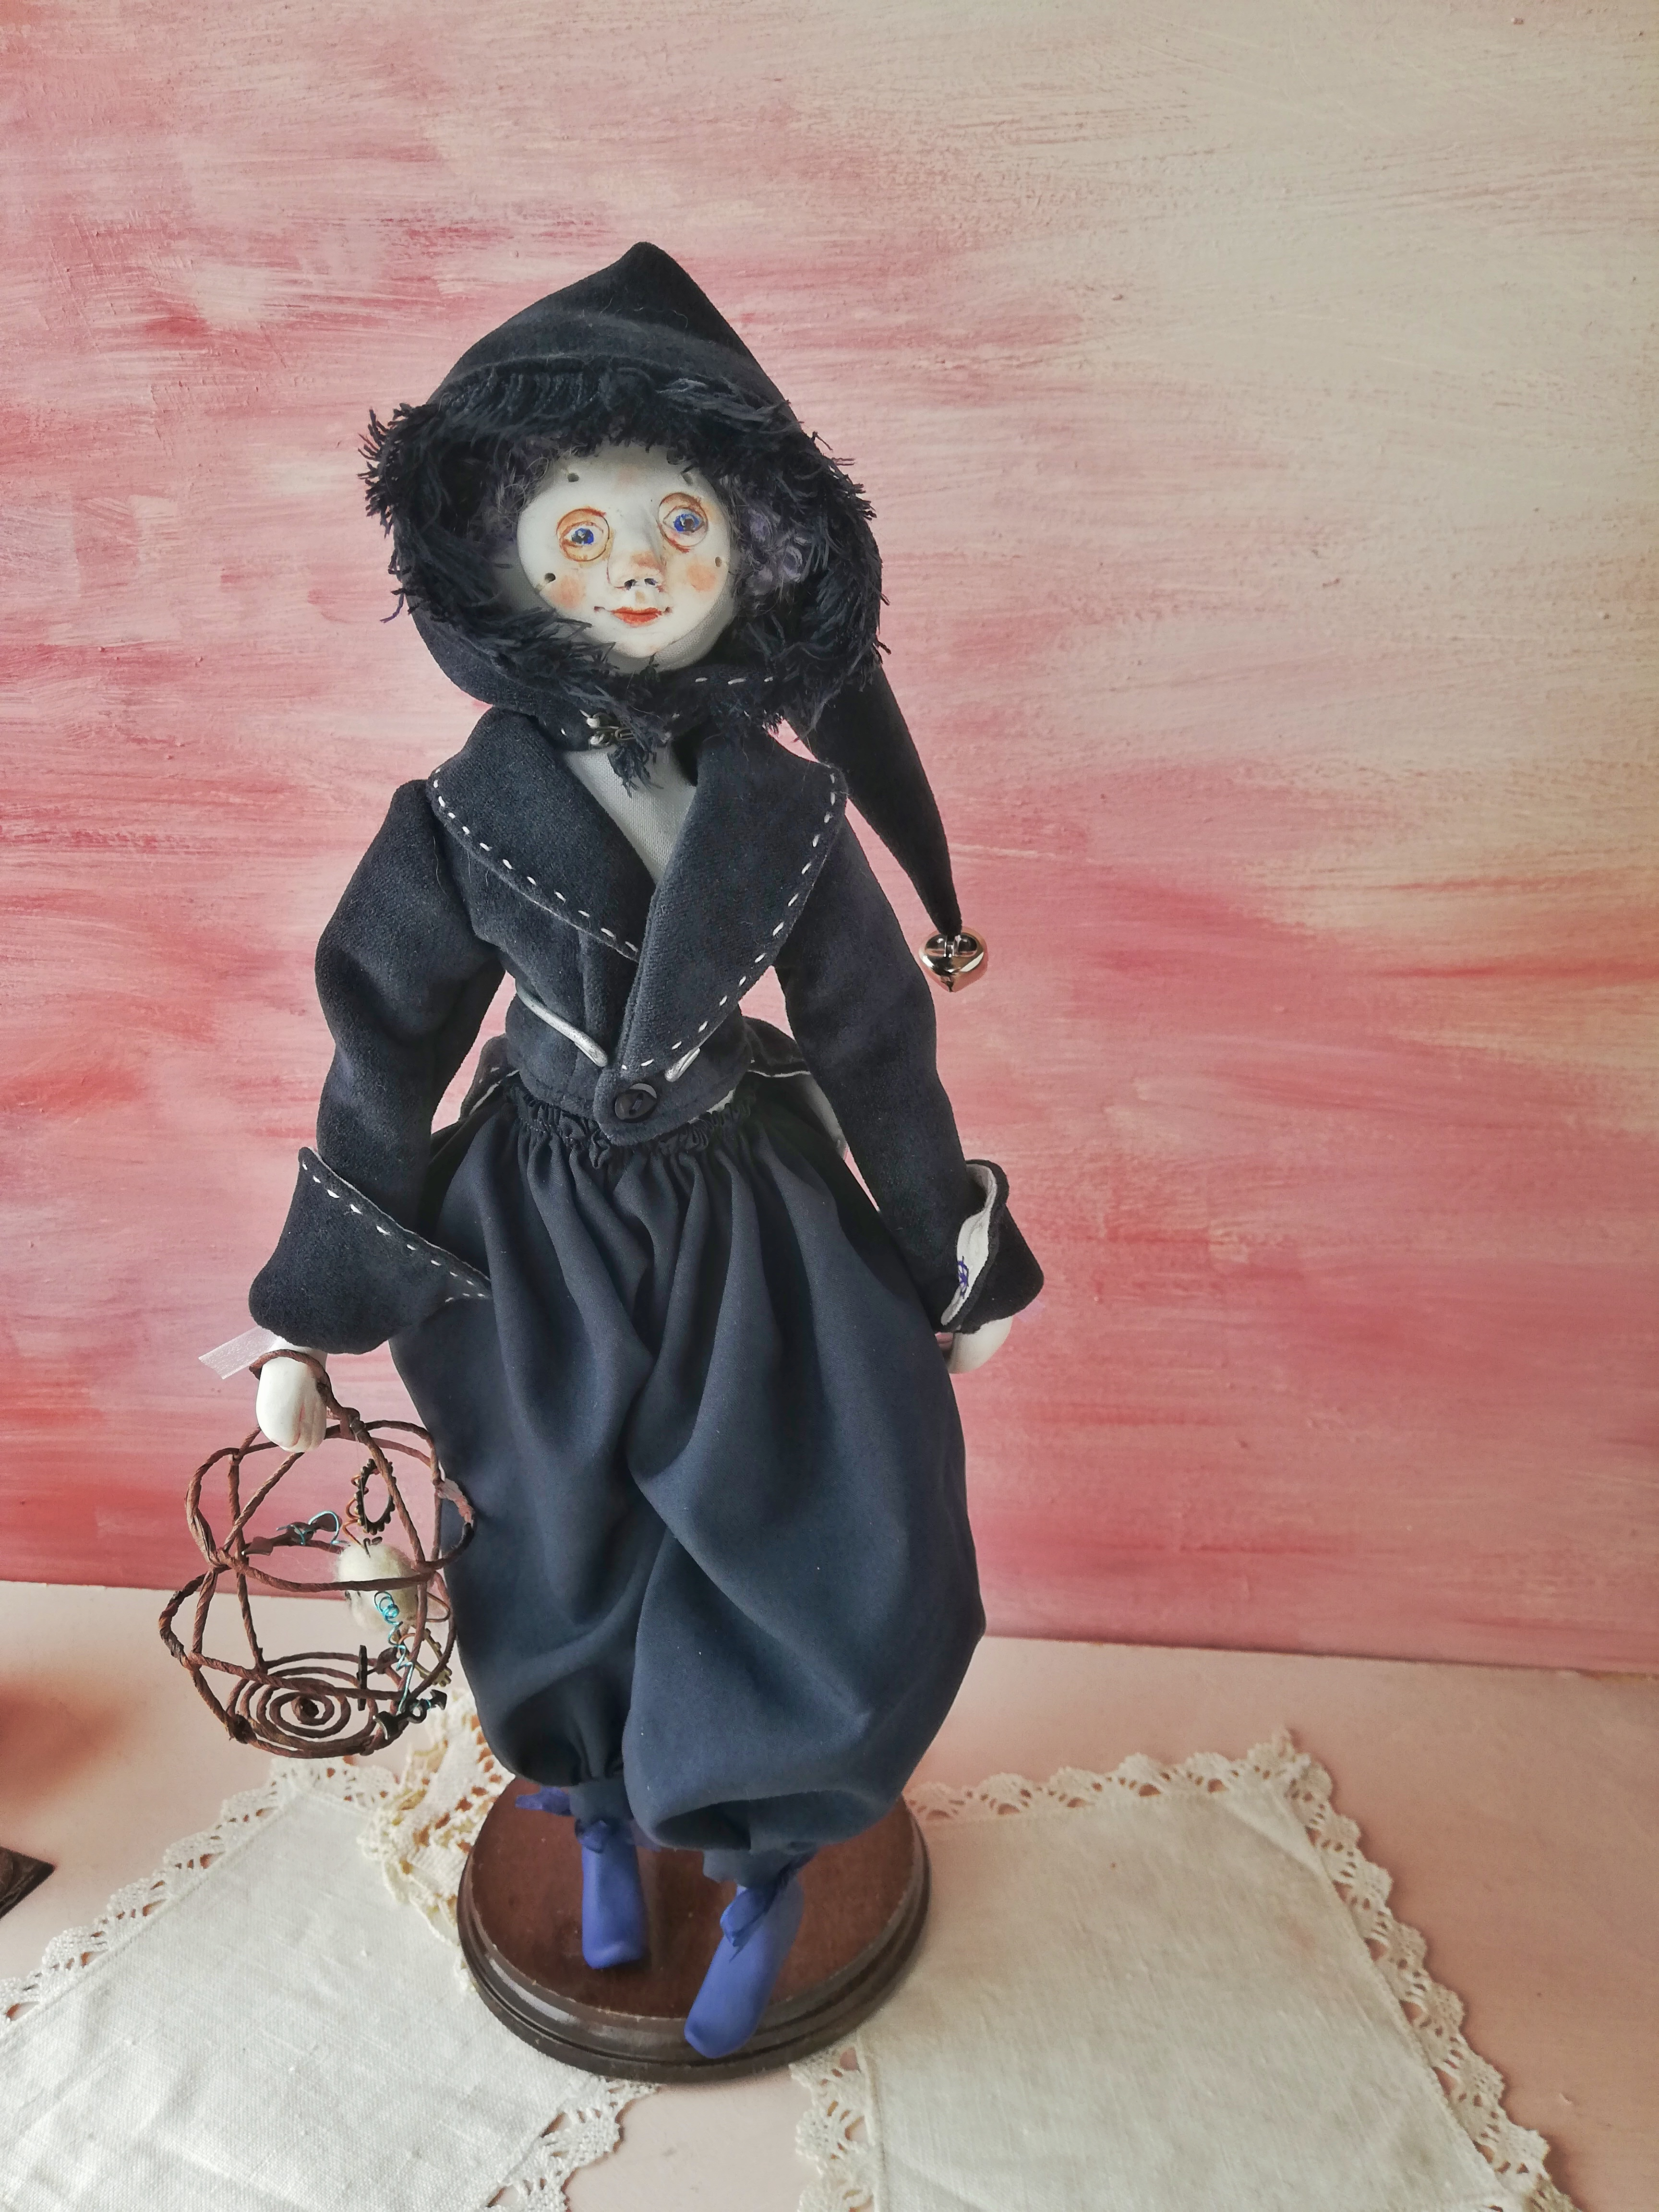 The time keeper art doll